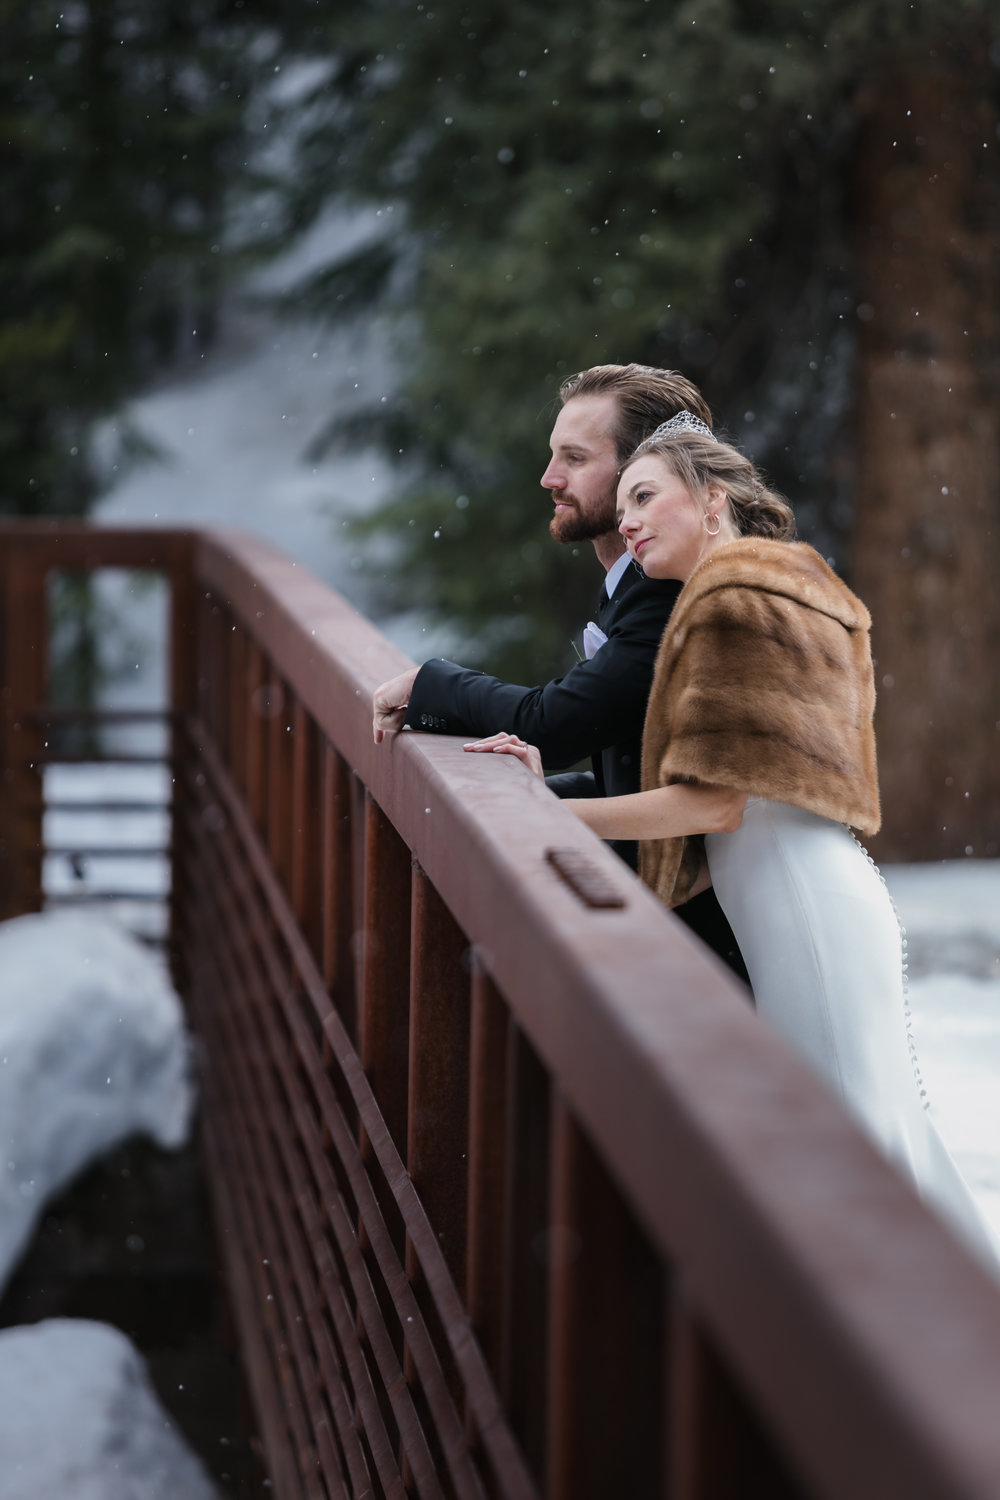 vild-photography-photographer-colorado-intimate-wedding-adventure-Stephanie- Adam-466.jpg